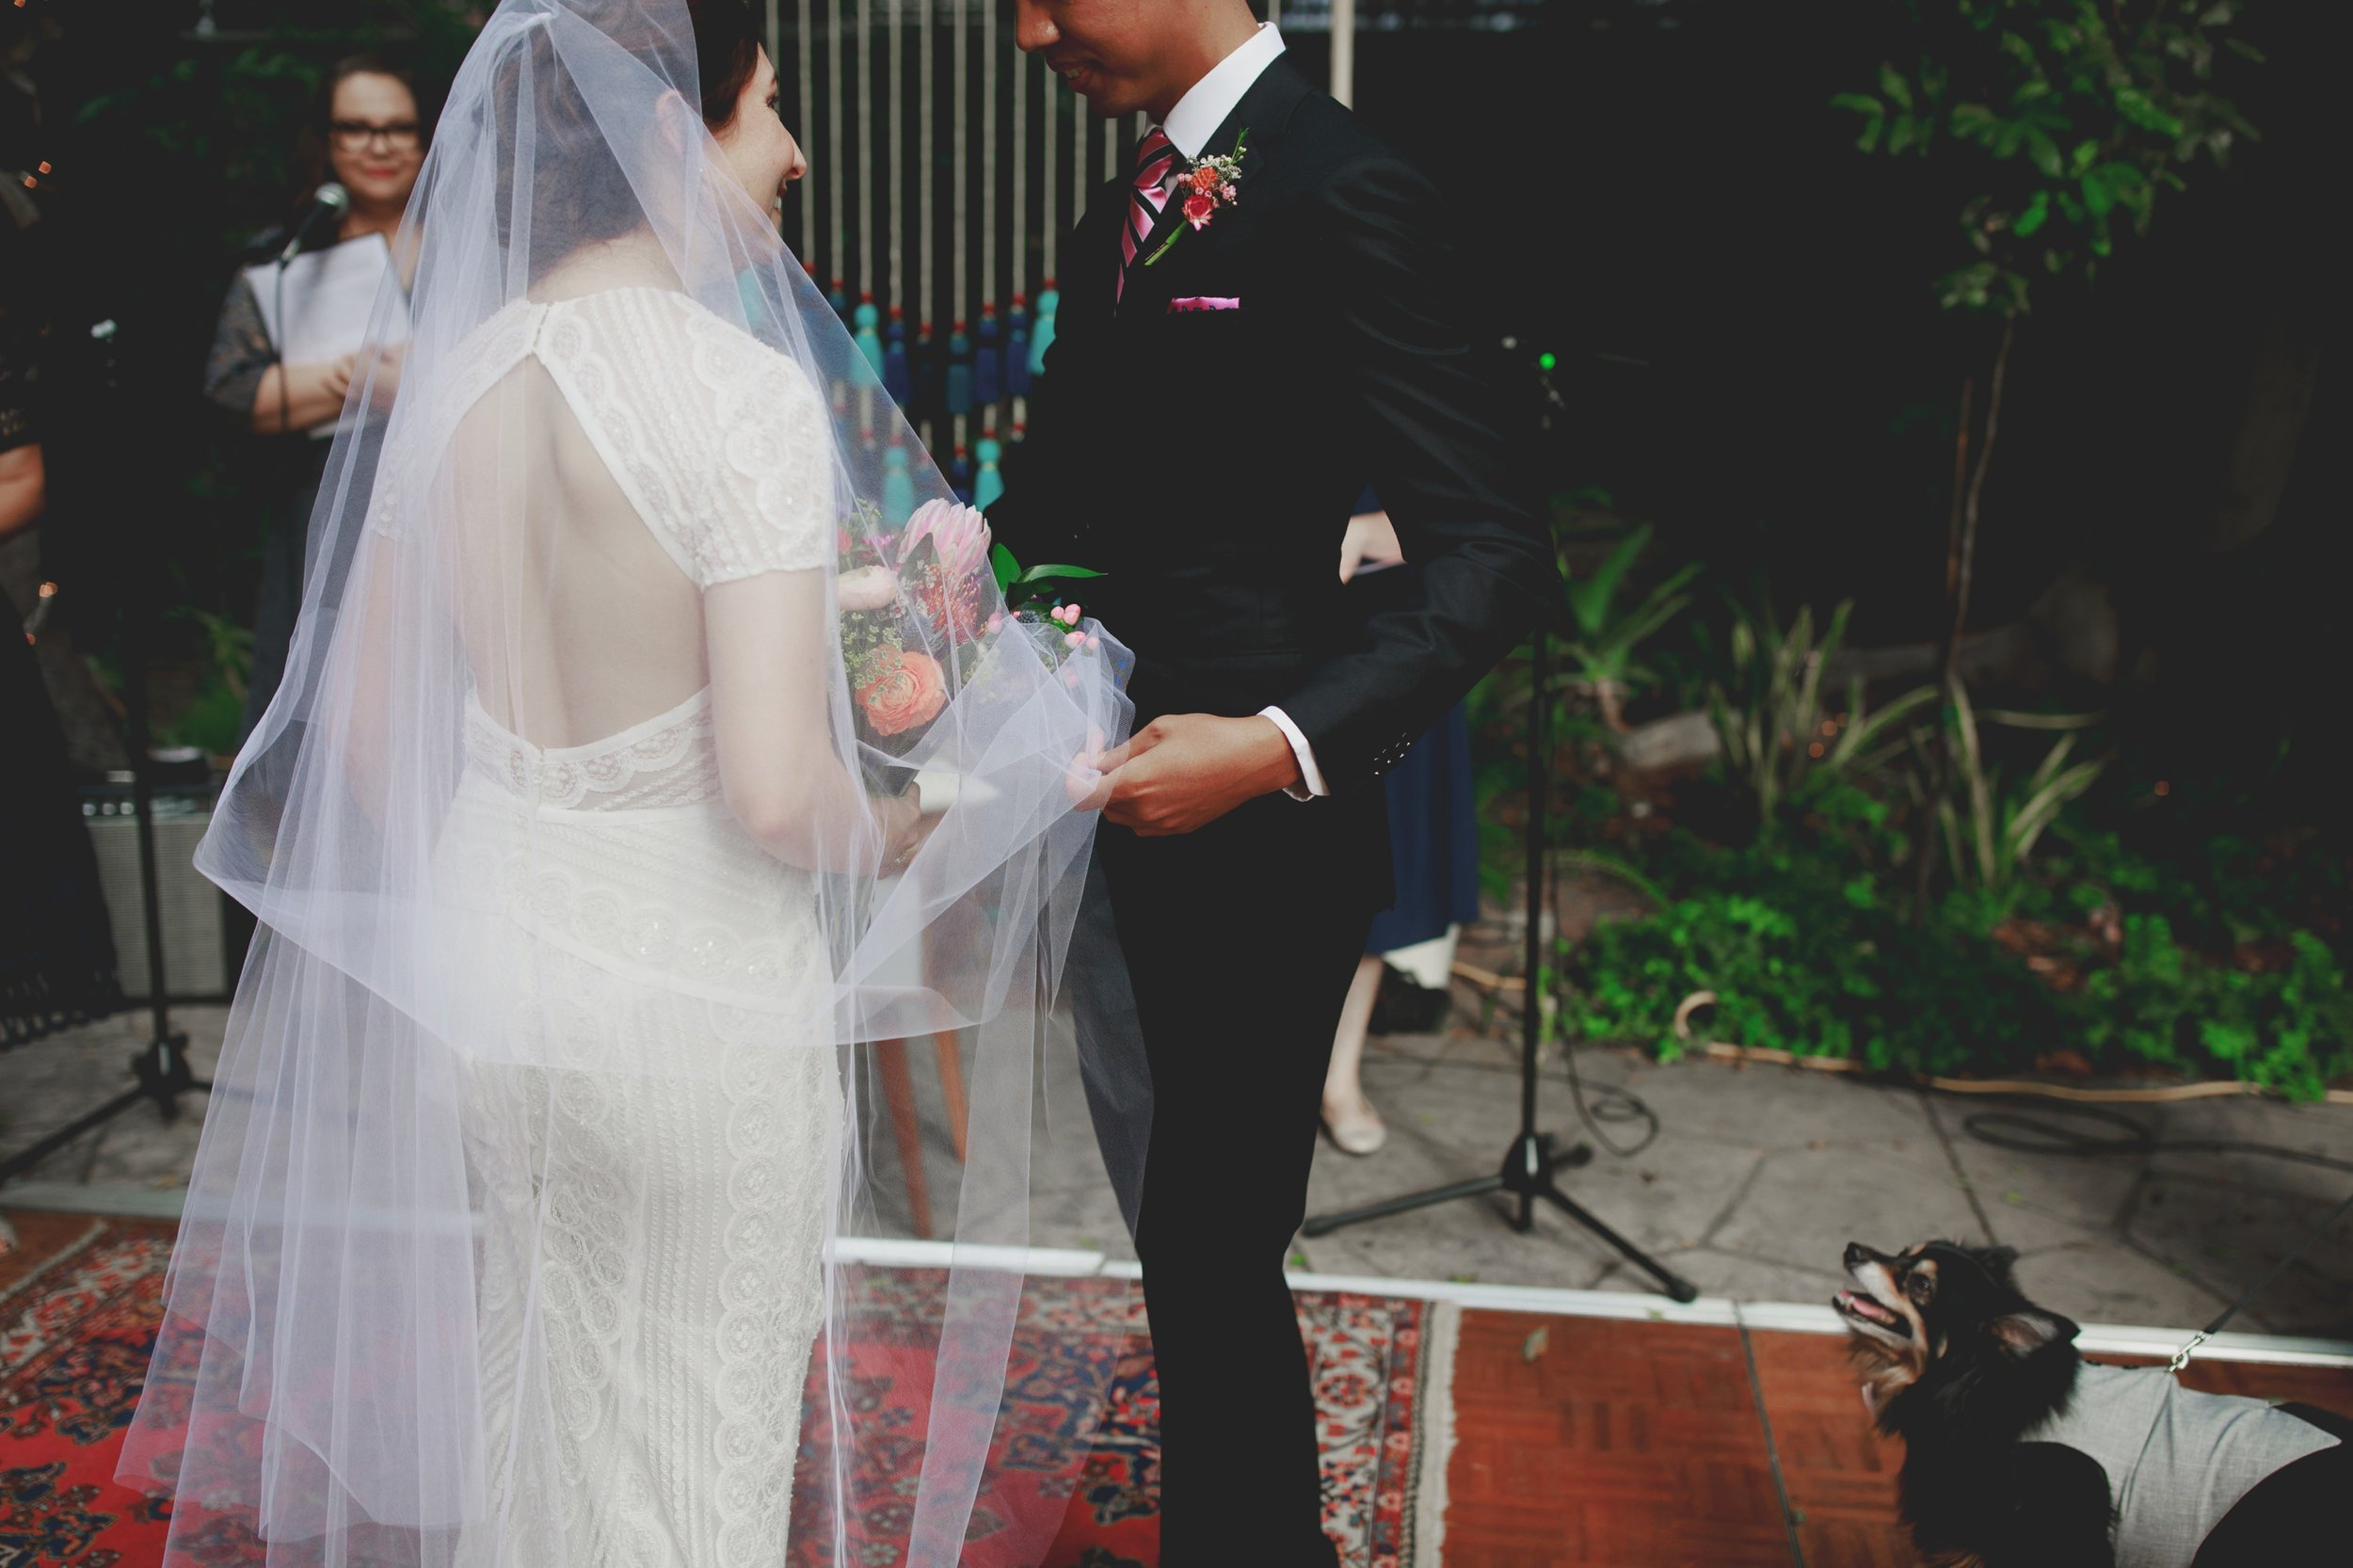 los_angeles_wedding_backyard_036.jpg